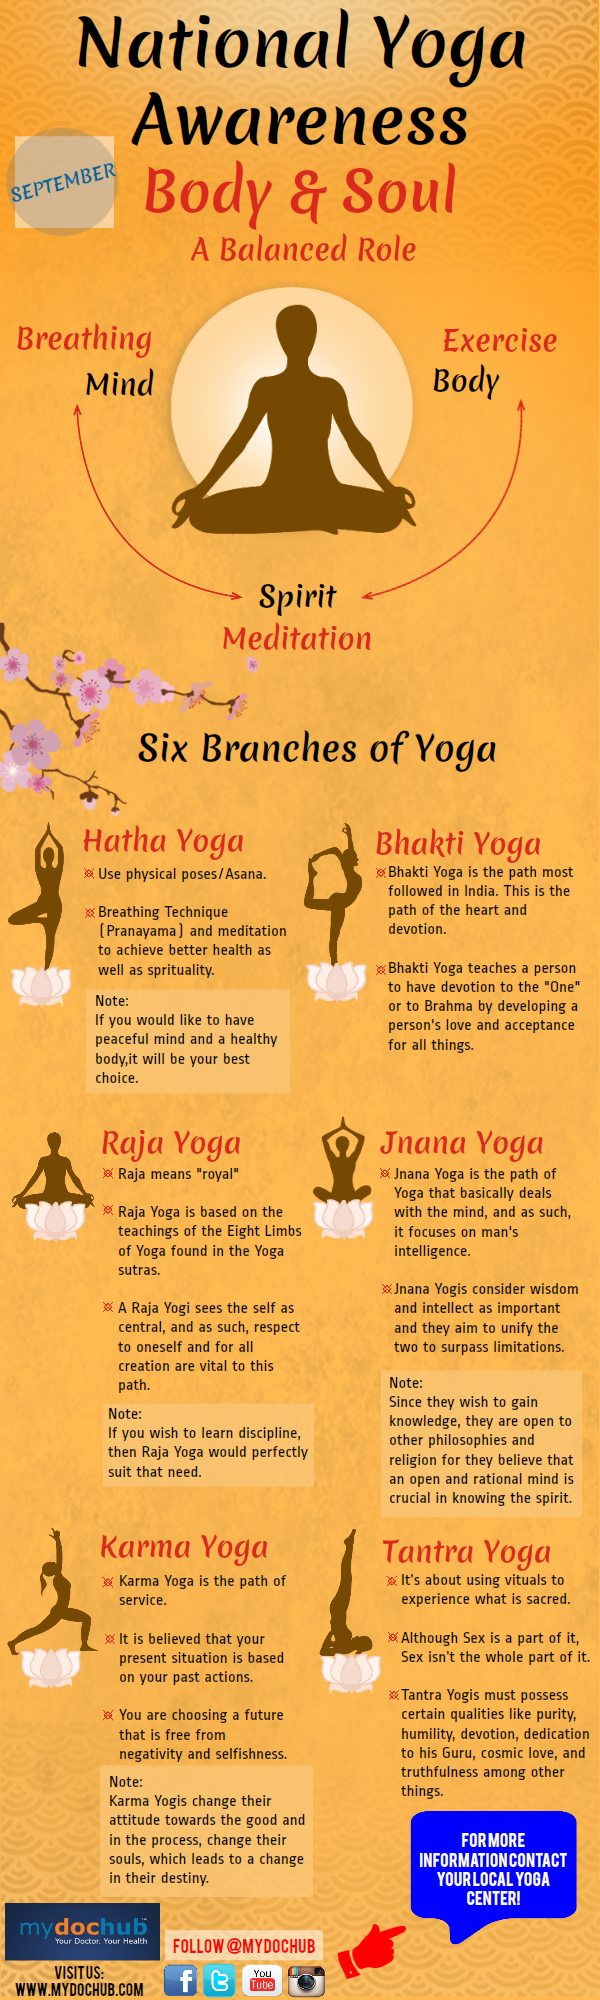 Yoga Awareness